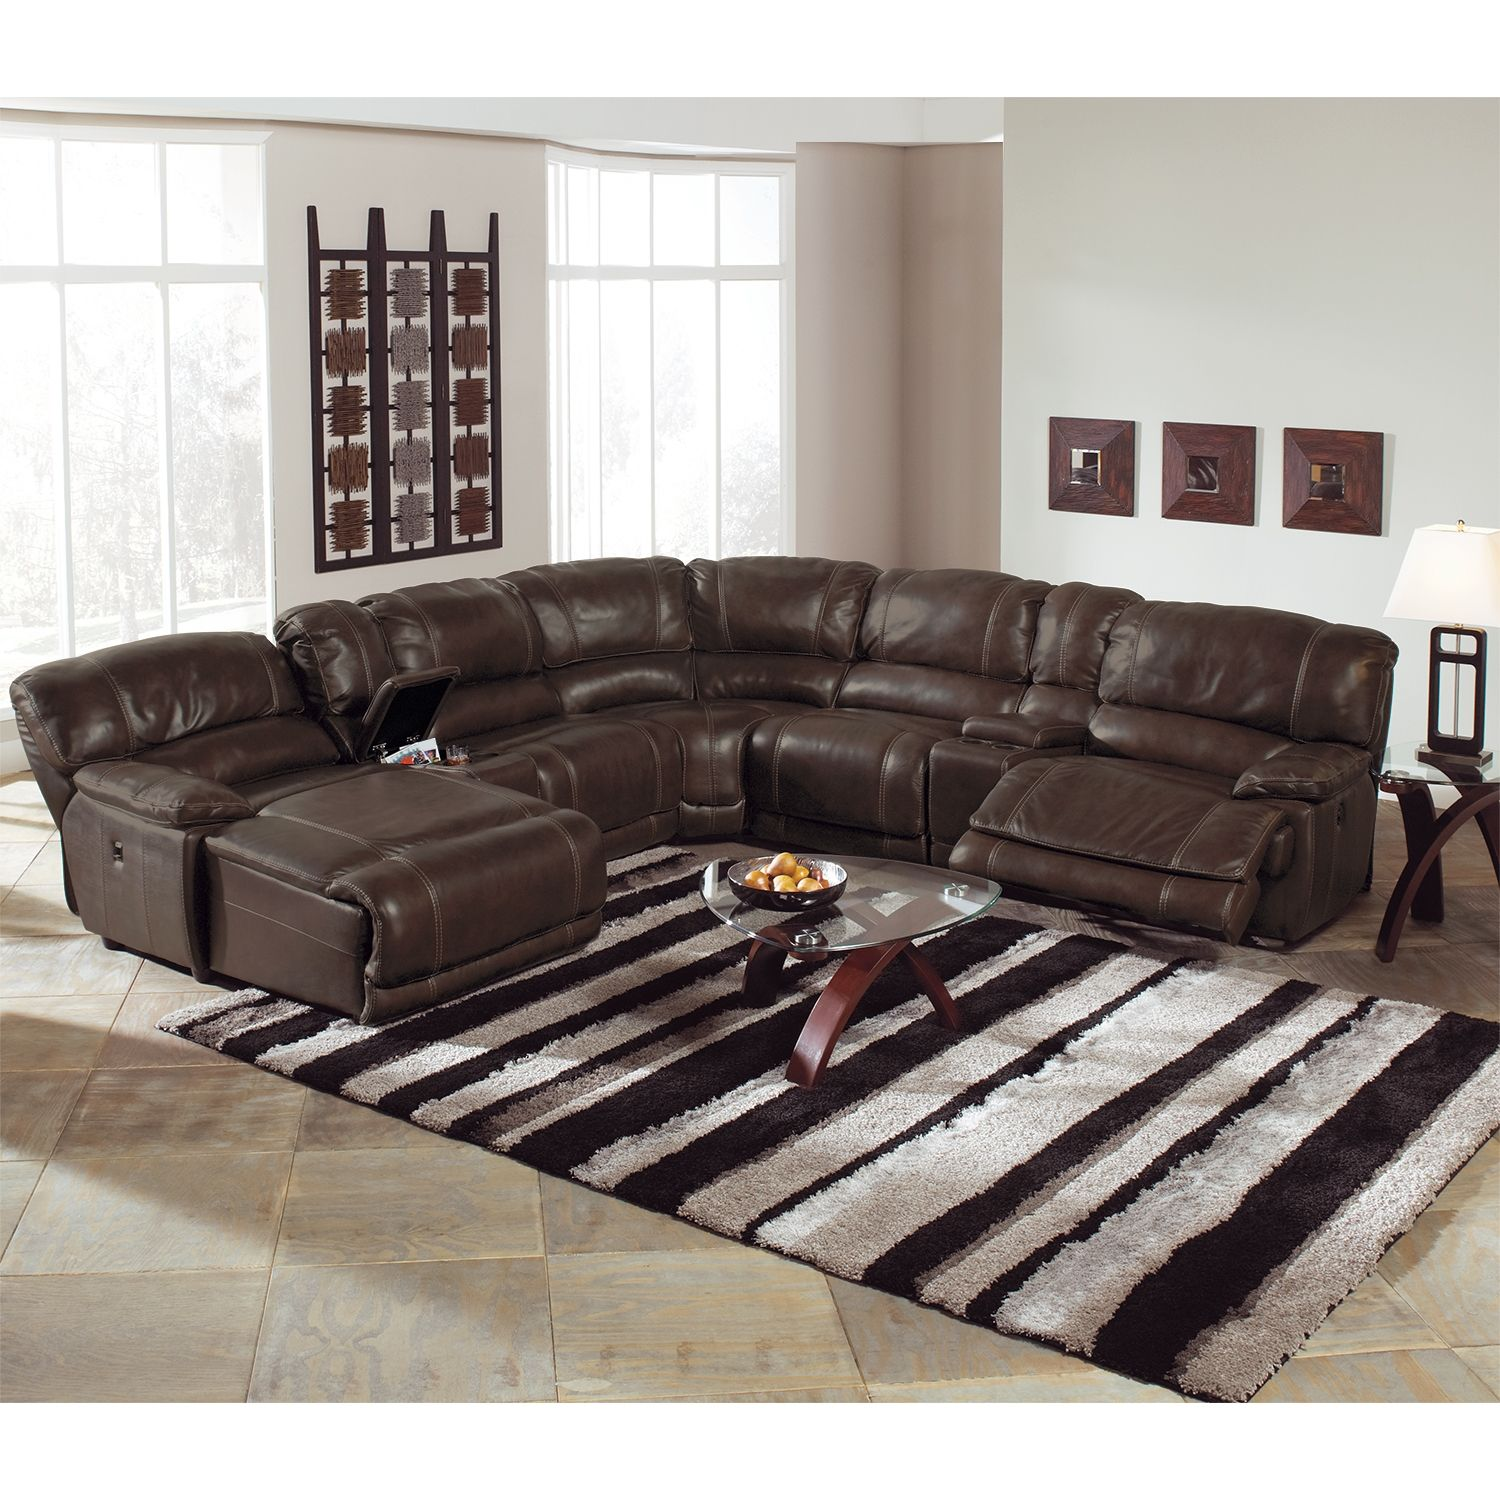 Best St Malo 6 Piece Power Reclining Sectional With Left 640 x 480